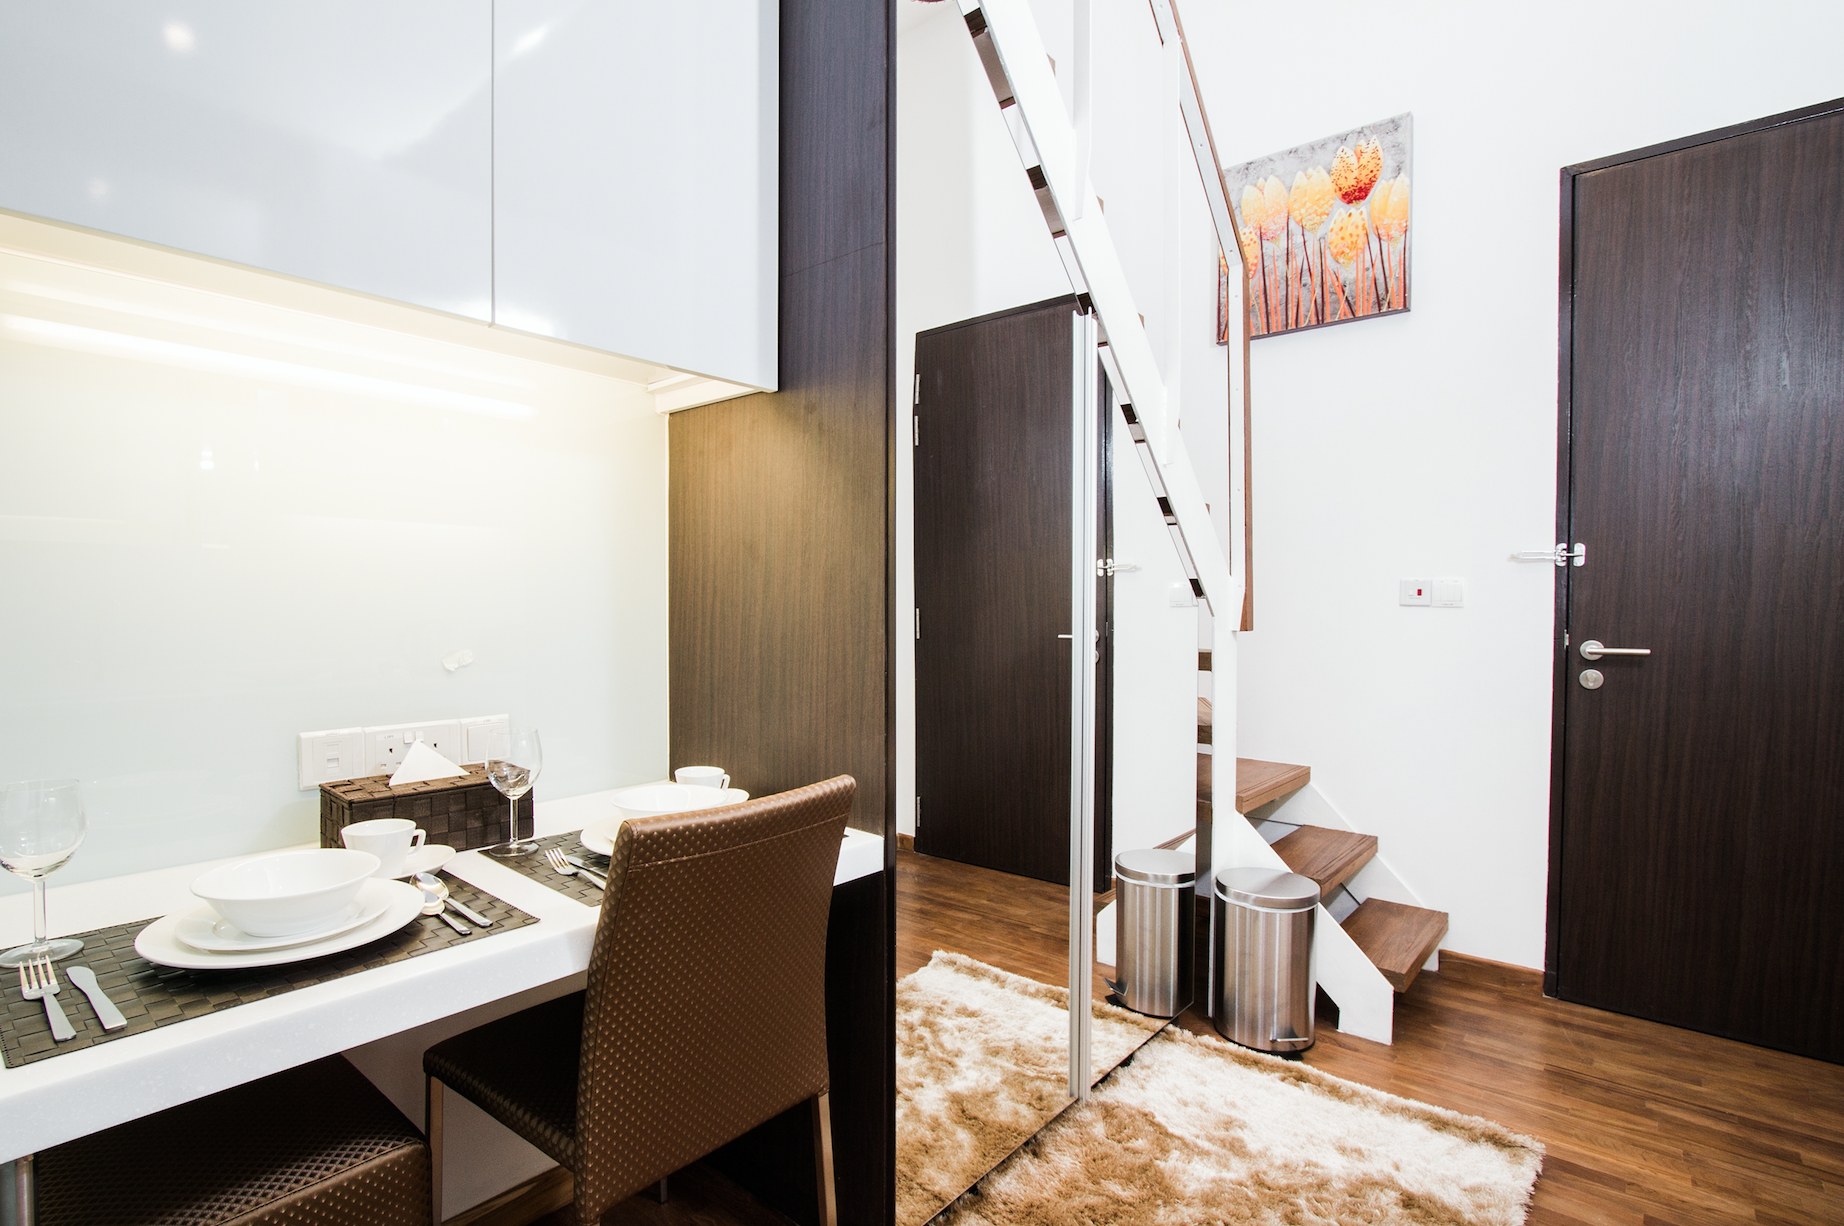 boutique hotel, Mothership: S'pore heritage boutique chain offers loft rooms from $110/night in central locations